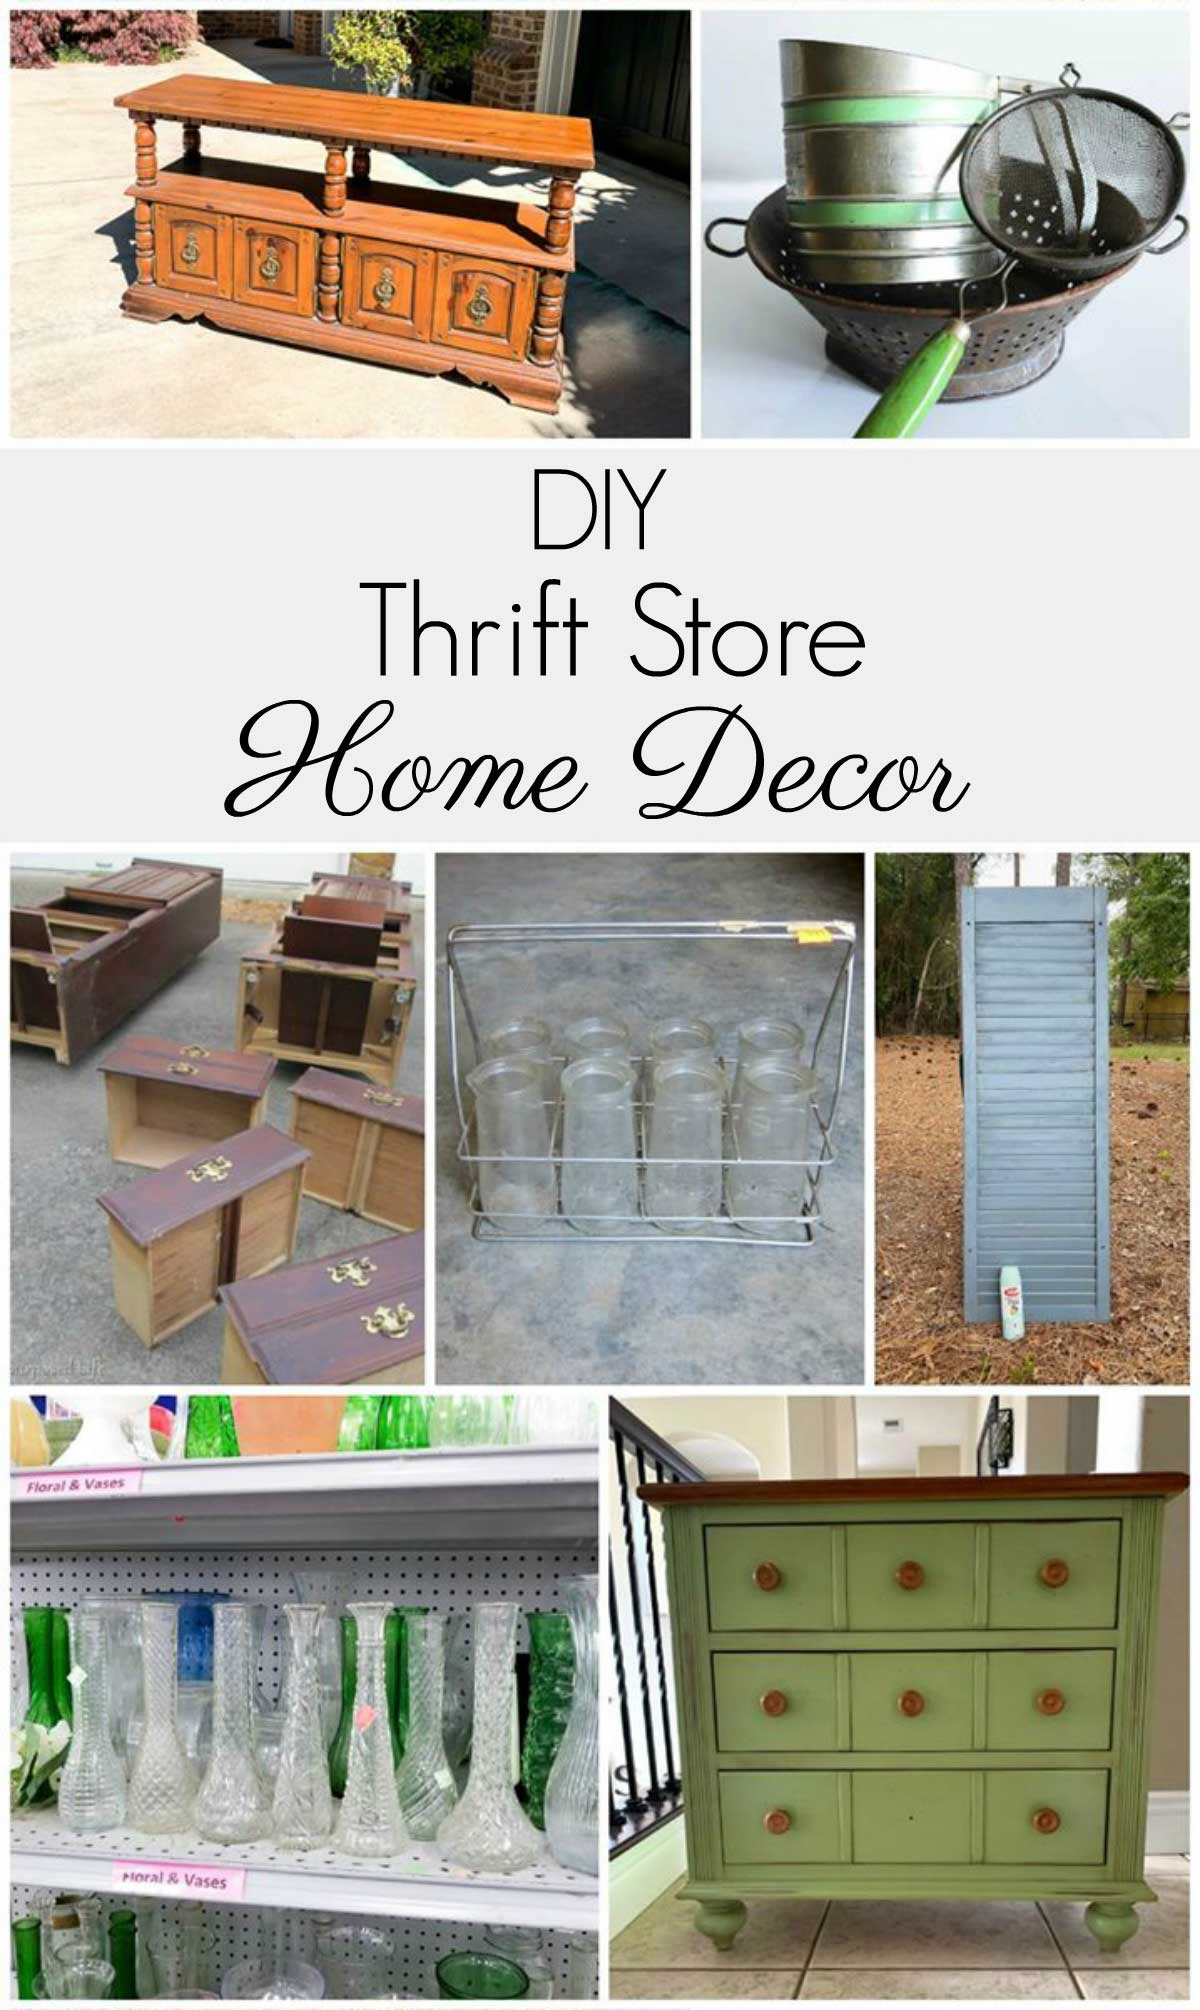 DIY thrift store home decor ideas